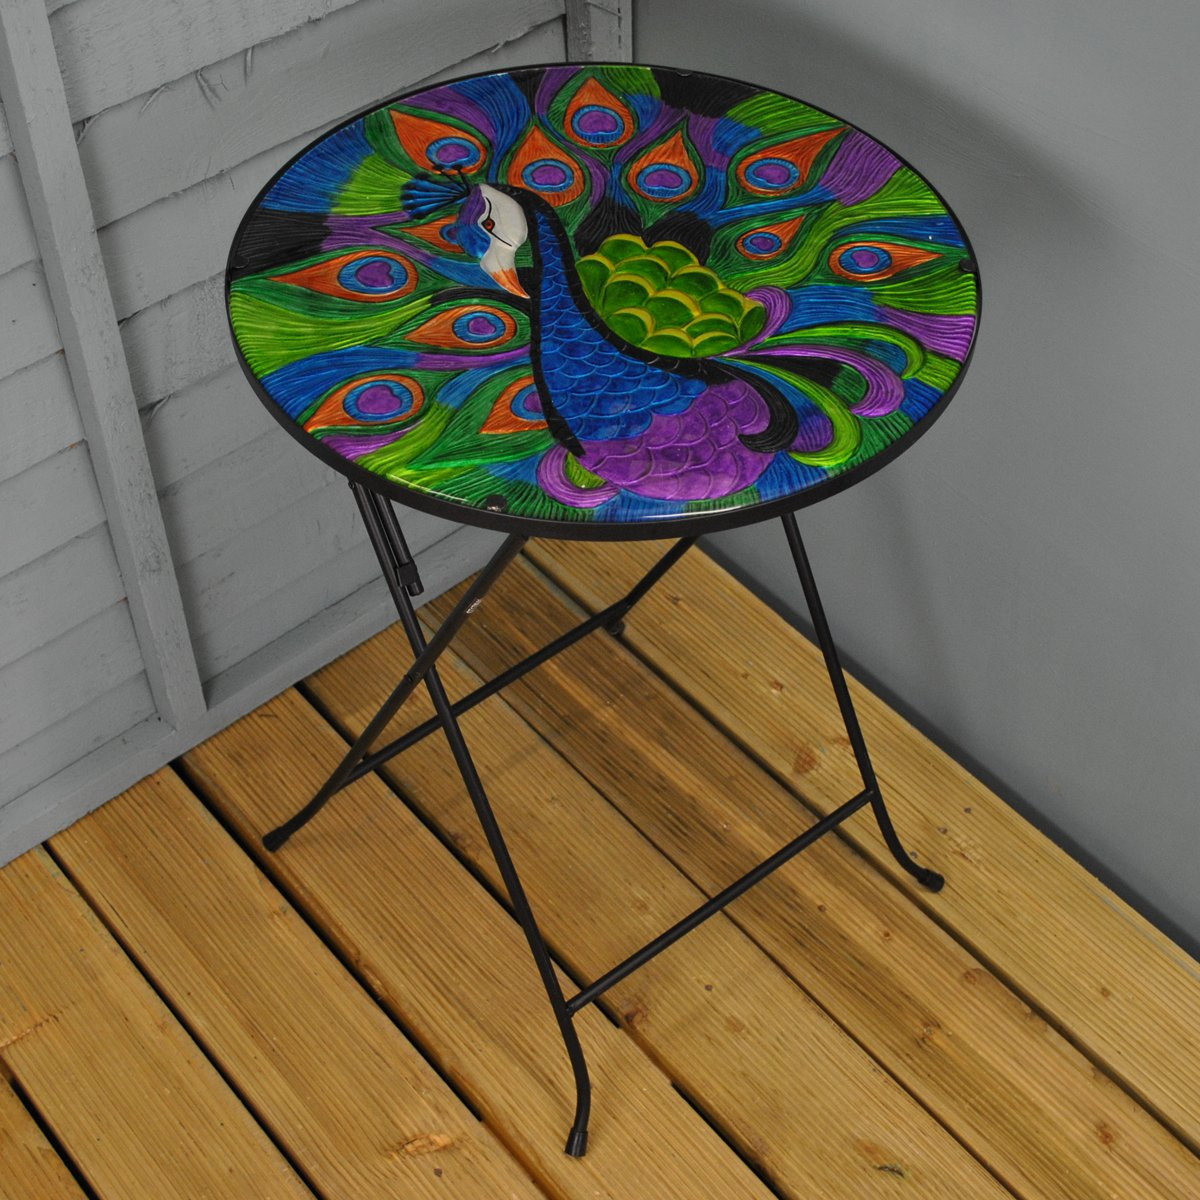 Extra Large Folding Drinks Side Garden Patio Table Peacock Design by Smart Garden Smart Solar